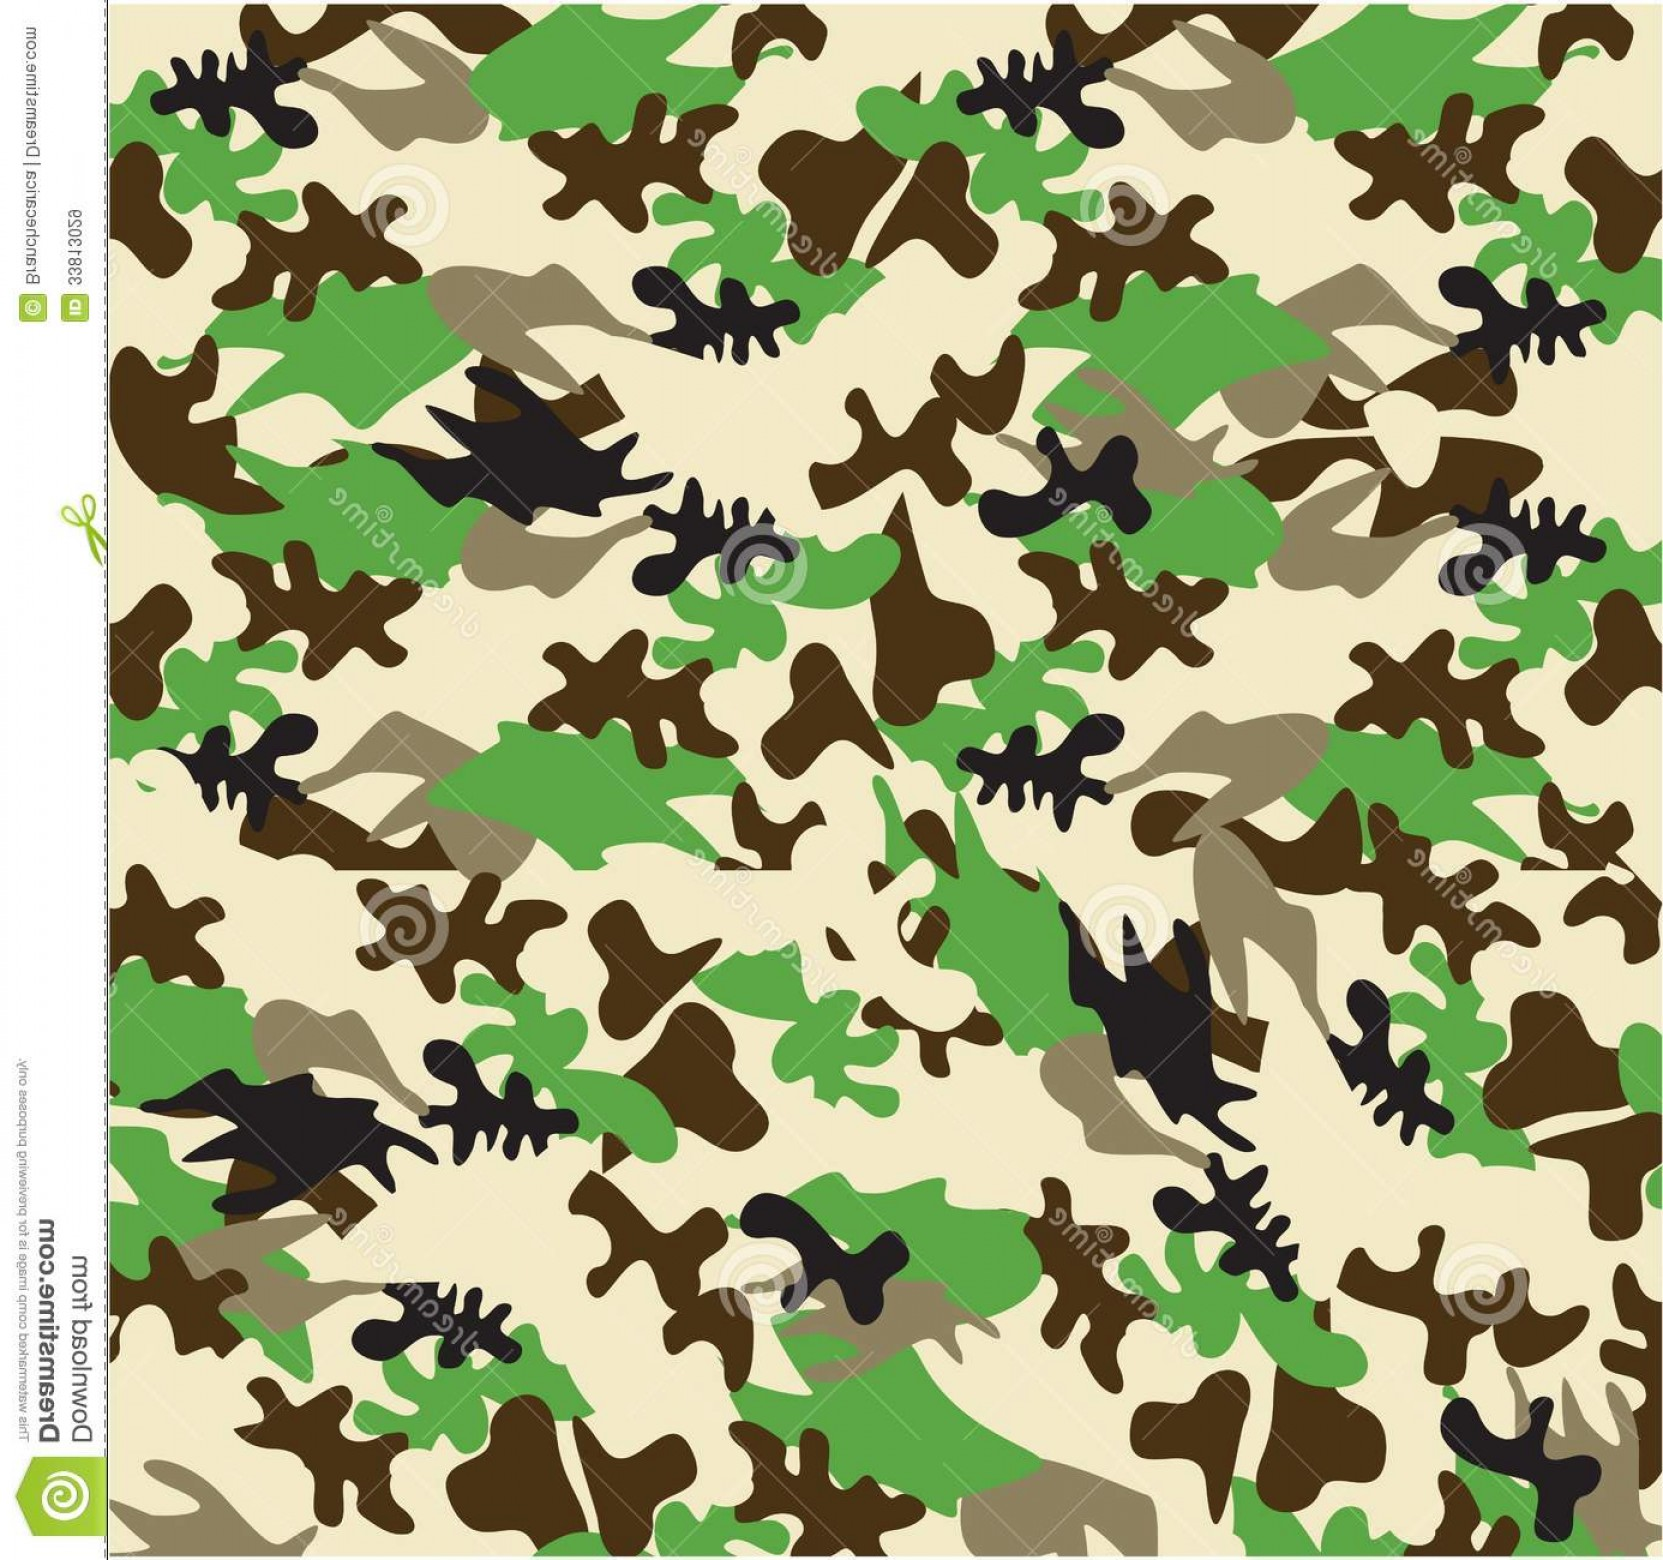 Army Camouflage Pattern Vector: Royalty Free Stock Images Camouflage Pattern Vector Illustration Image